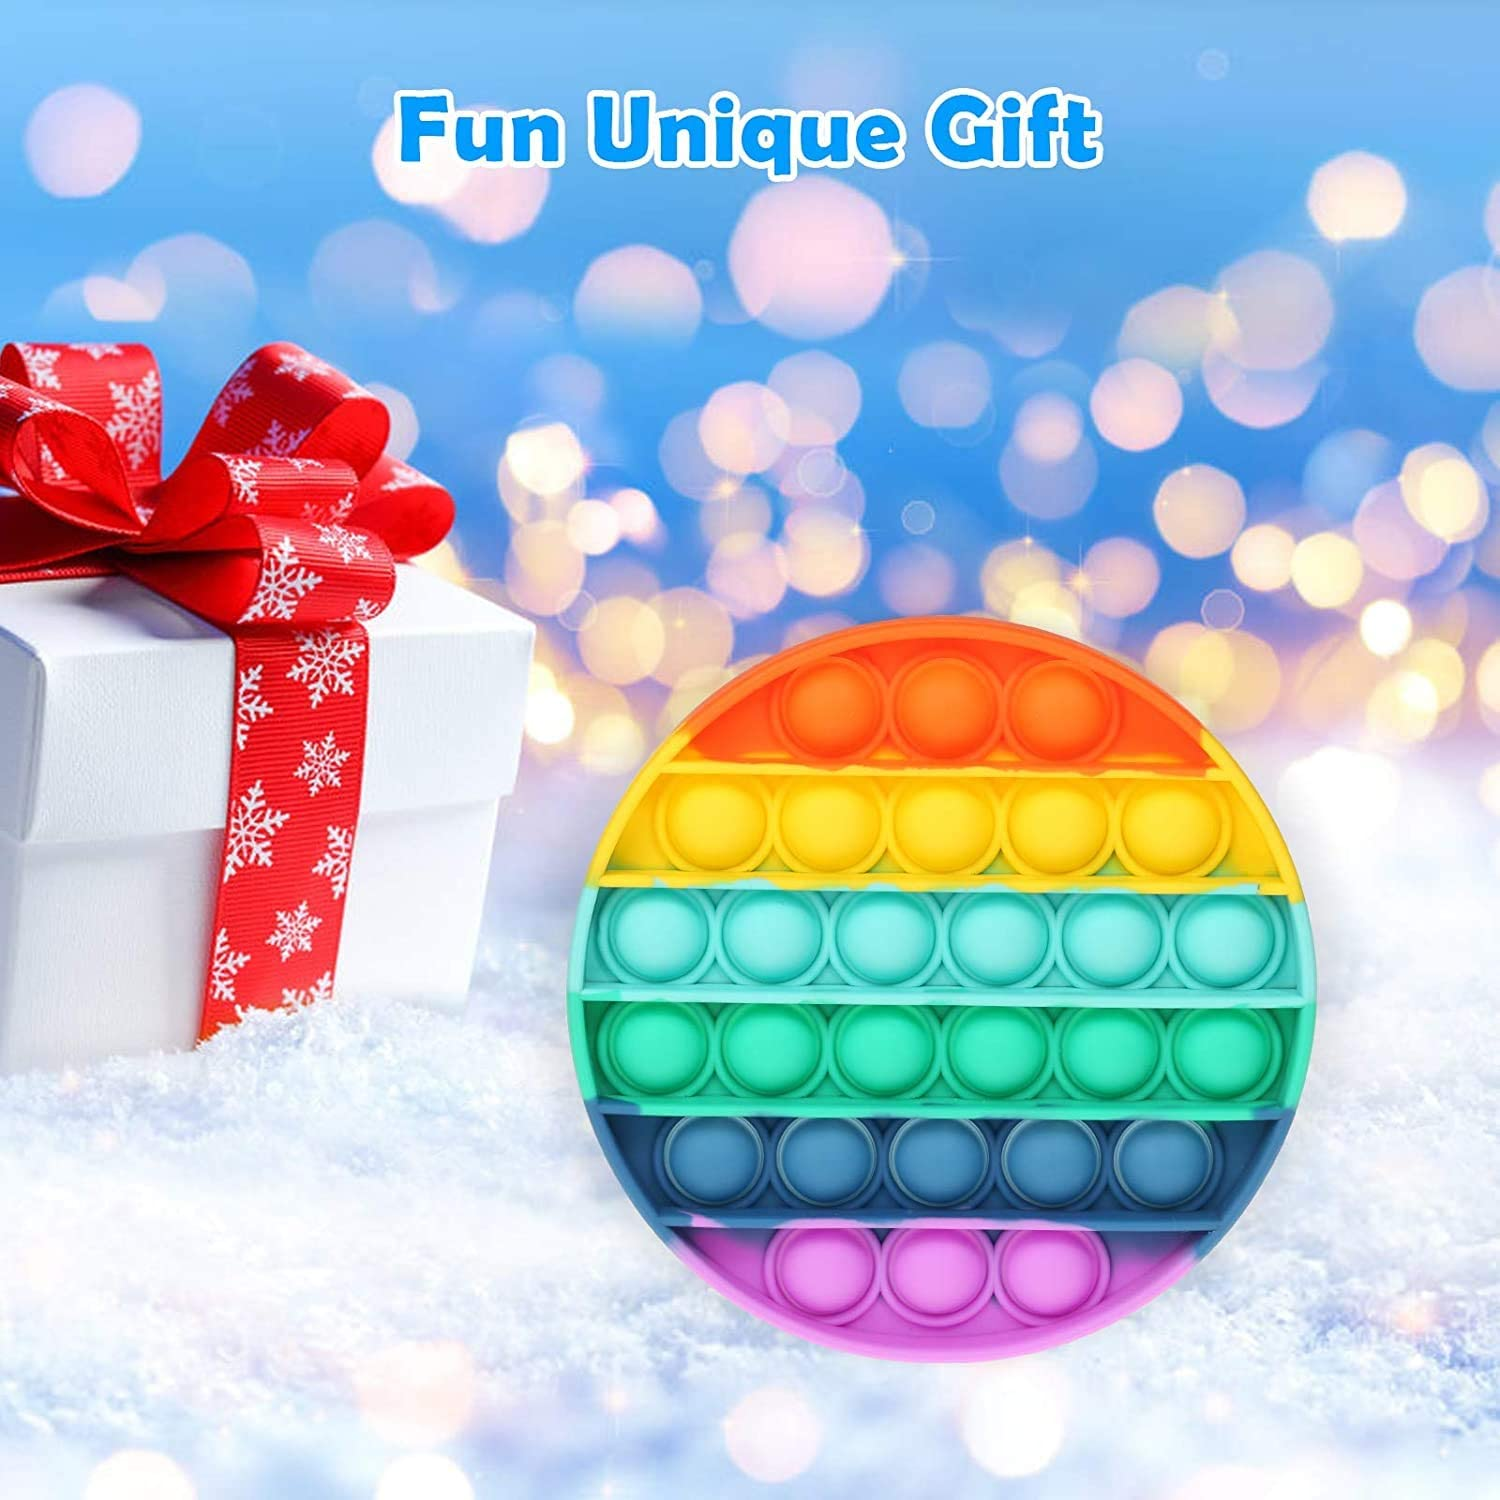 Silicone Figetget Toy for ADD ADHD Popping Fidget Novelty Gift for Kids Adults 3pcs,Multicolor Niyewfdo Fidget Sensory Toy Bubble Popper Anxiety Relief Autism Toy